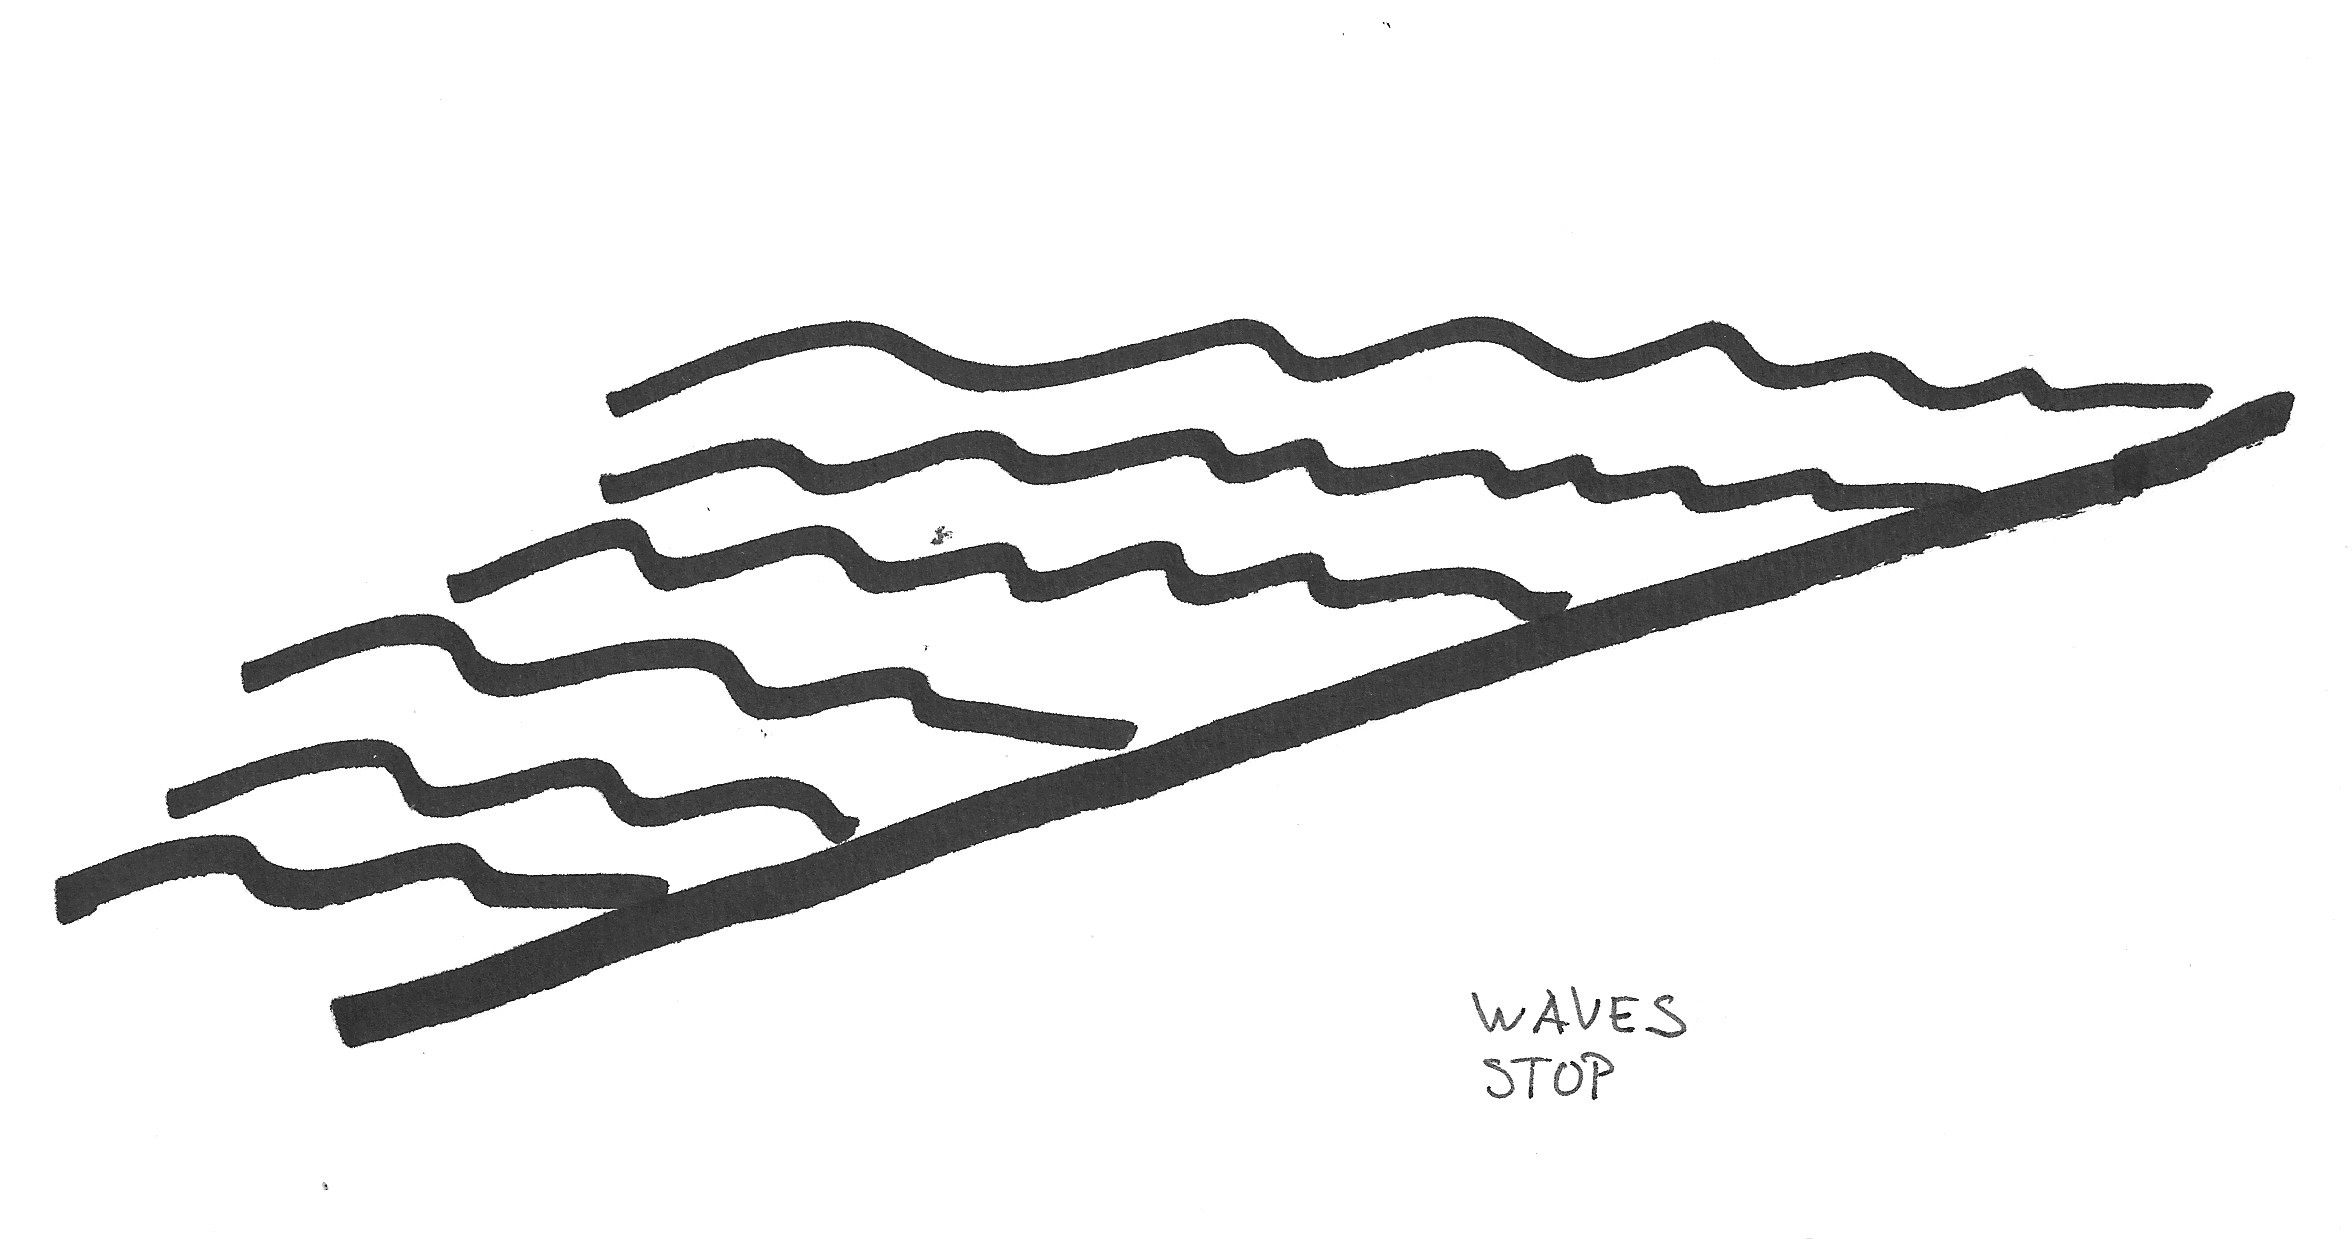 2352x1240 Waves black and white water waves clipart black and white free 4